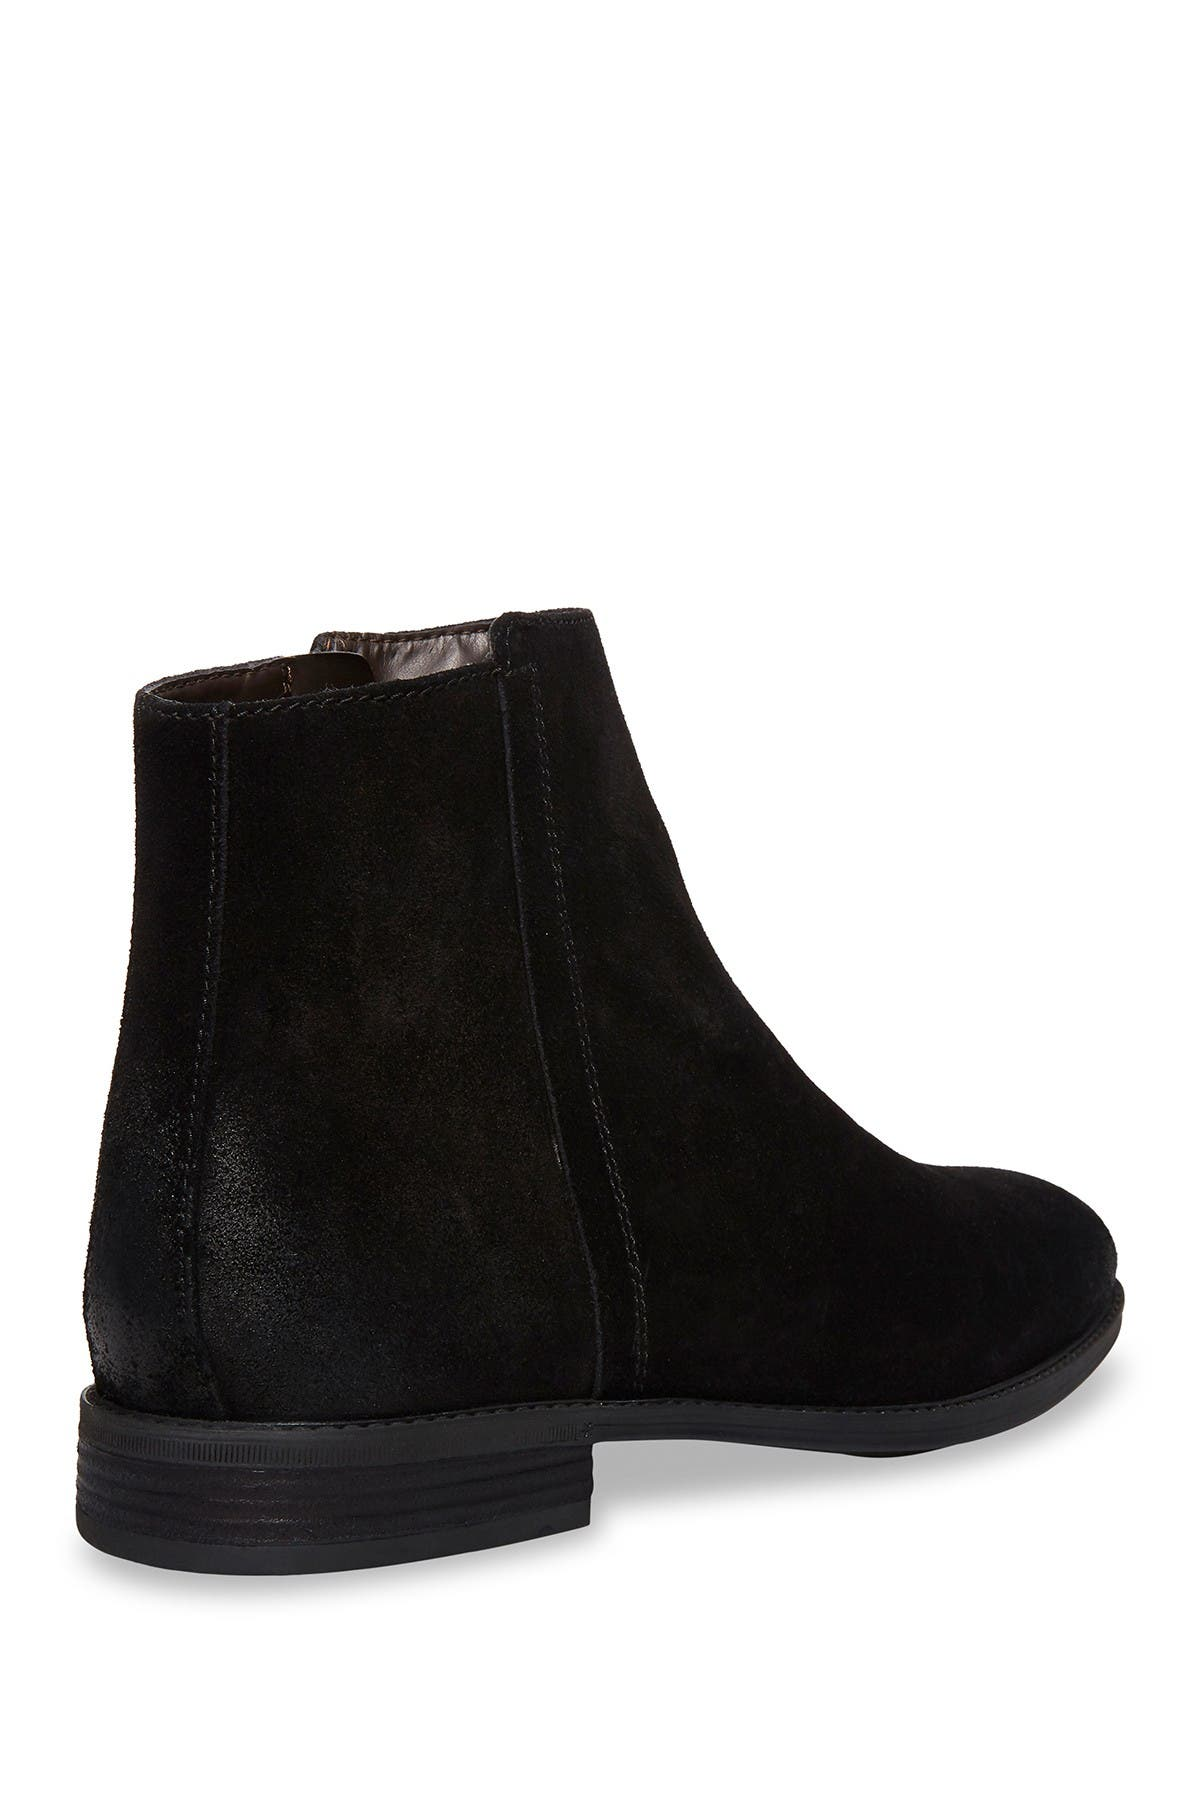 Image of Steve Madden Depp Zipper Boot